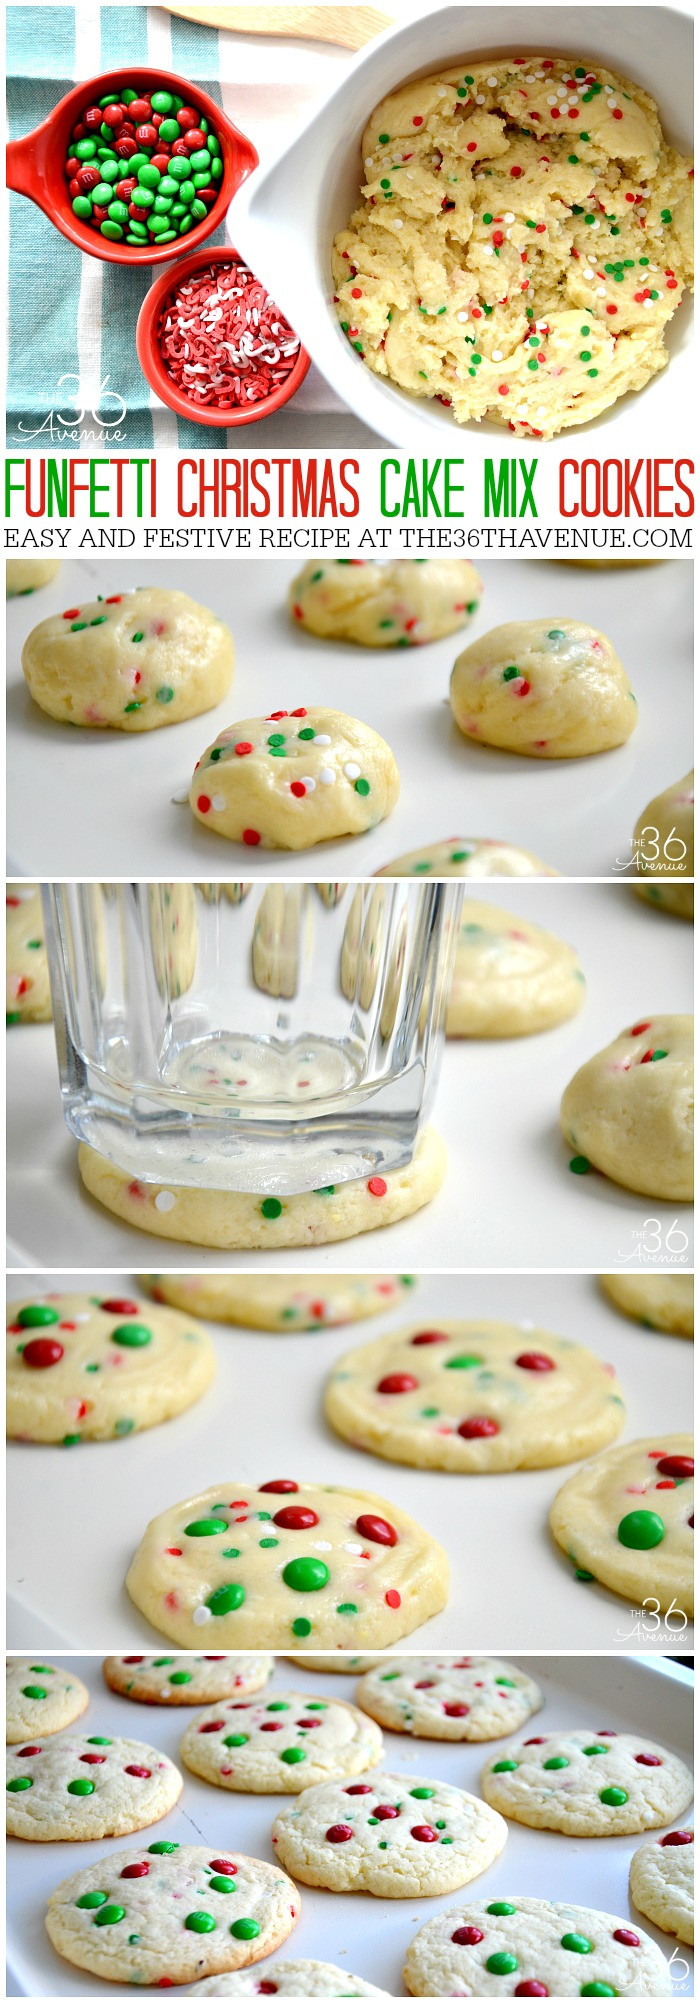 Easy Christmas Cookies  Christmas Cookies Funfetti Cookies The 36th AVENUE